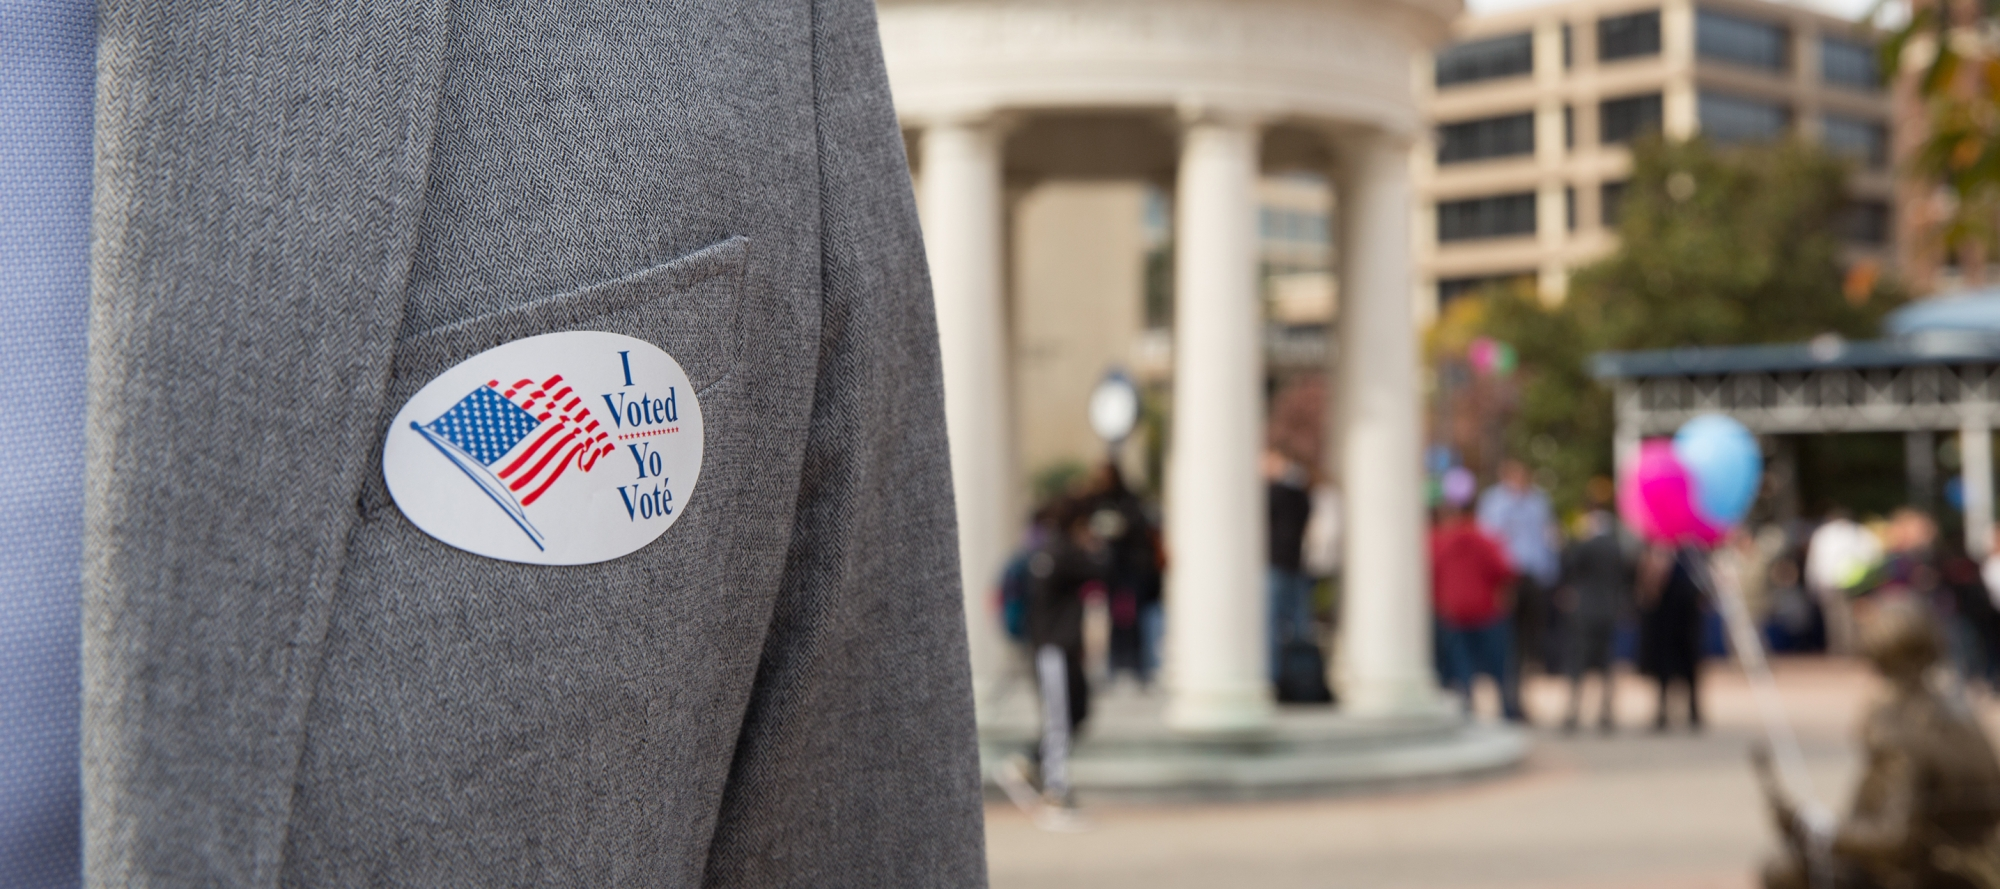 The George Washington University Cbs 12 Circuit Wiring Module I Voted Sticker Being Worn By A Person In Jacket